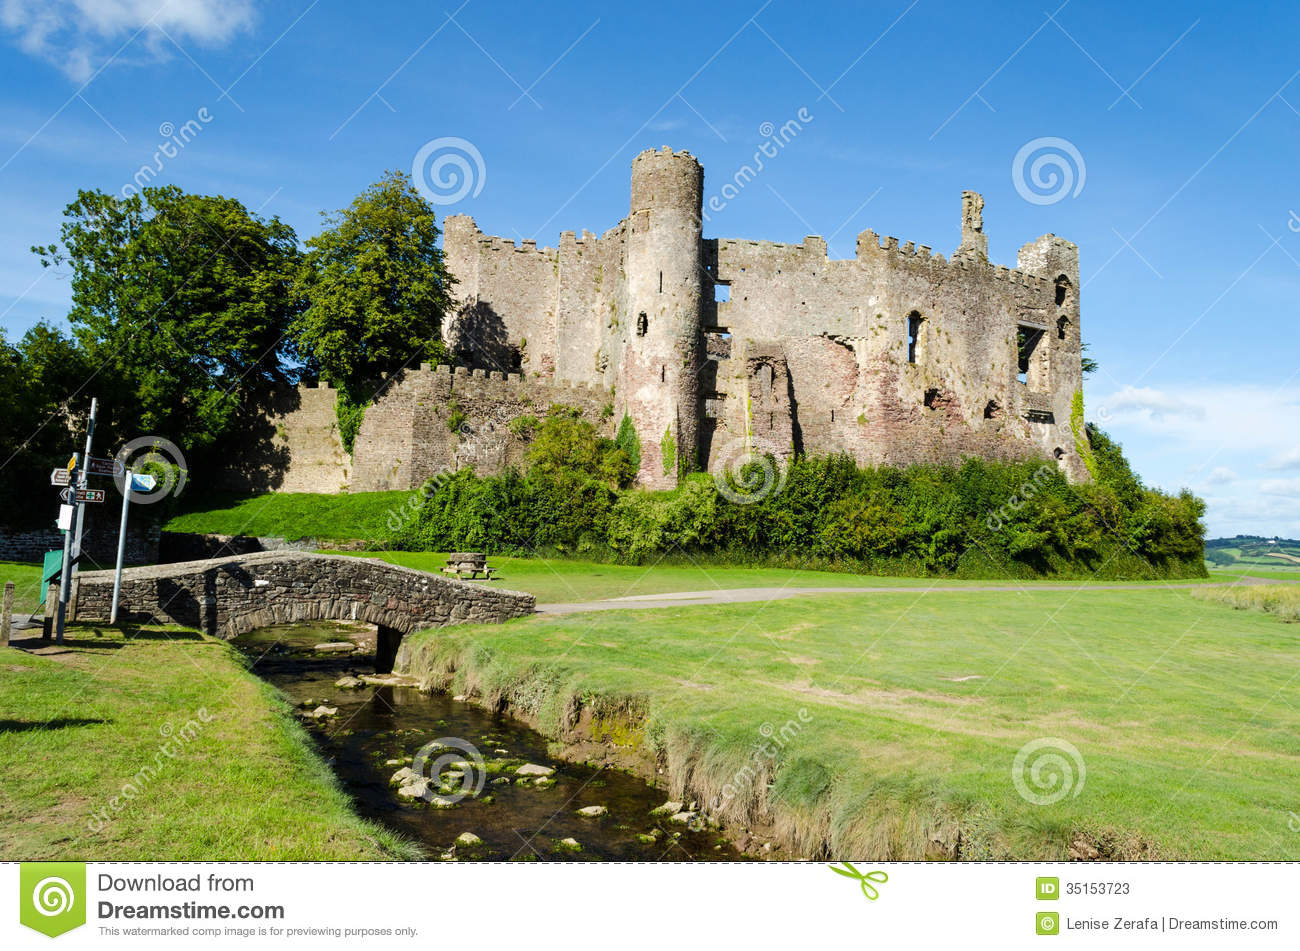 Laugharne United Kingdom  city photos gallery : ... Photos: Laugharne Castle in Carmarthenshire Wales, United Kingdom